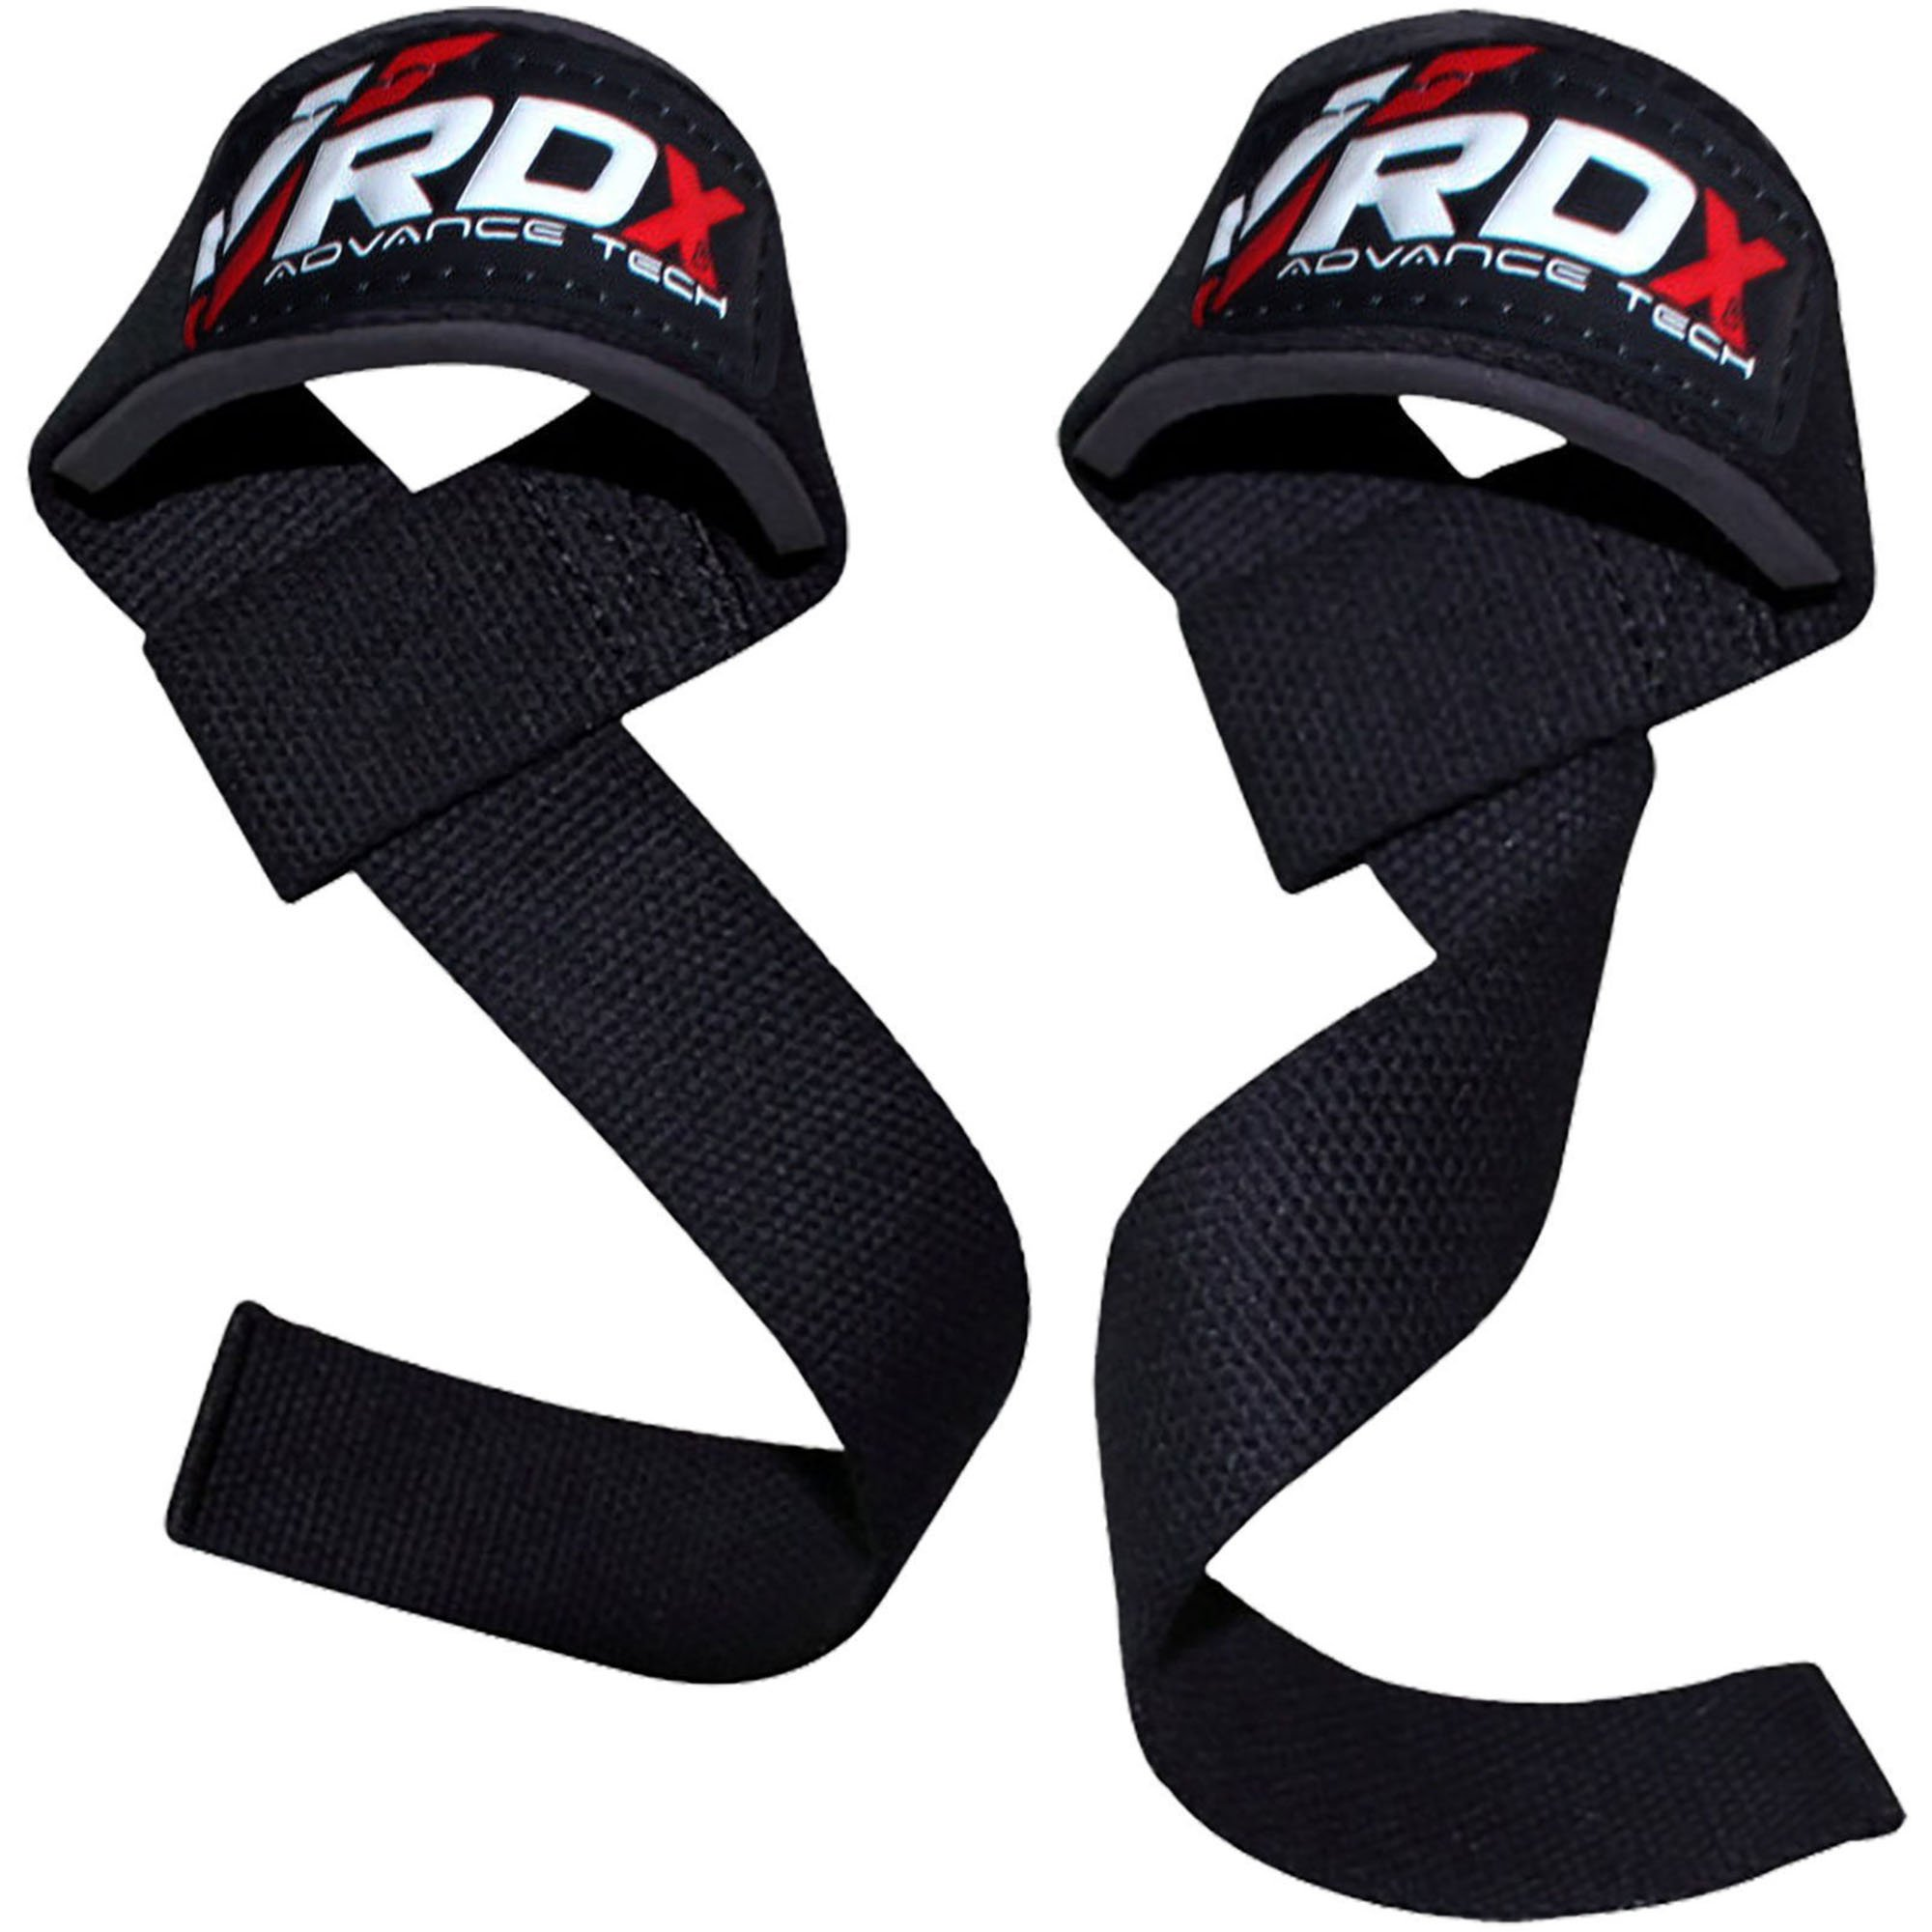 RDX GYM WEIGHT LIFTING WRIST STRAP SUPPORT